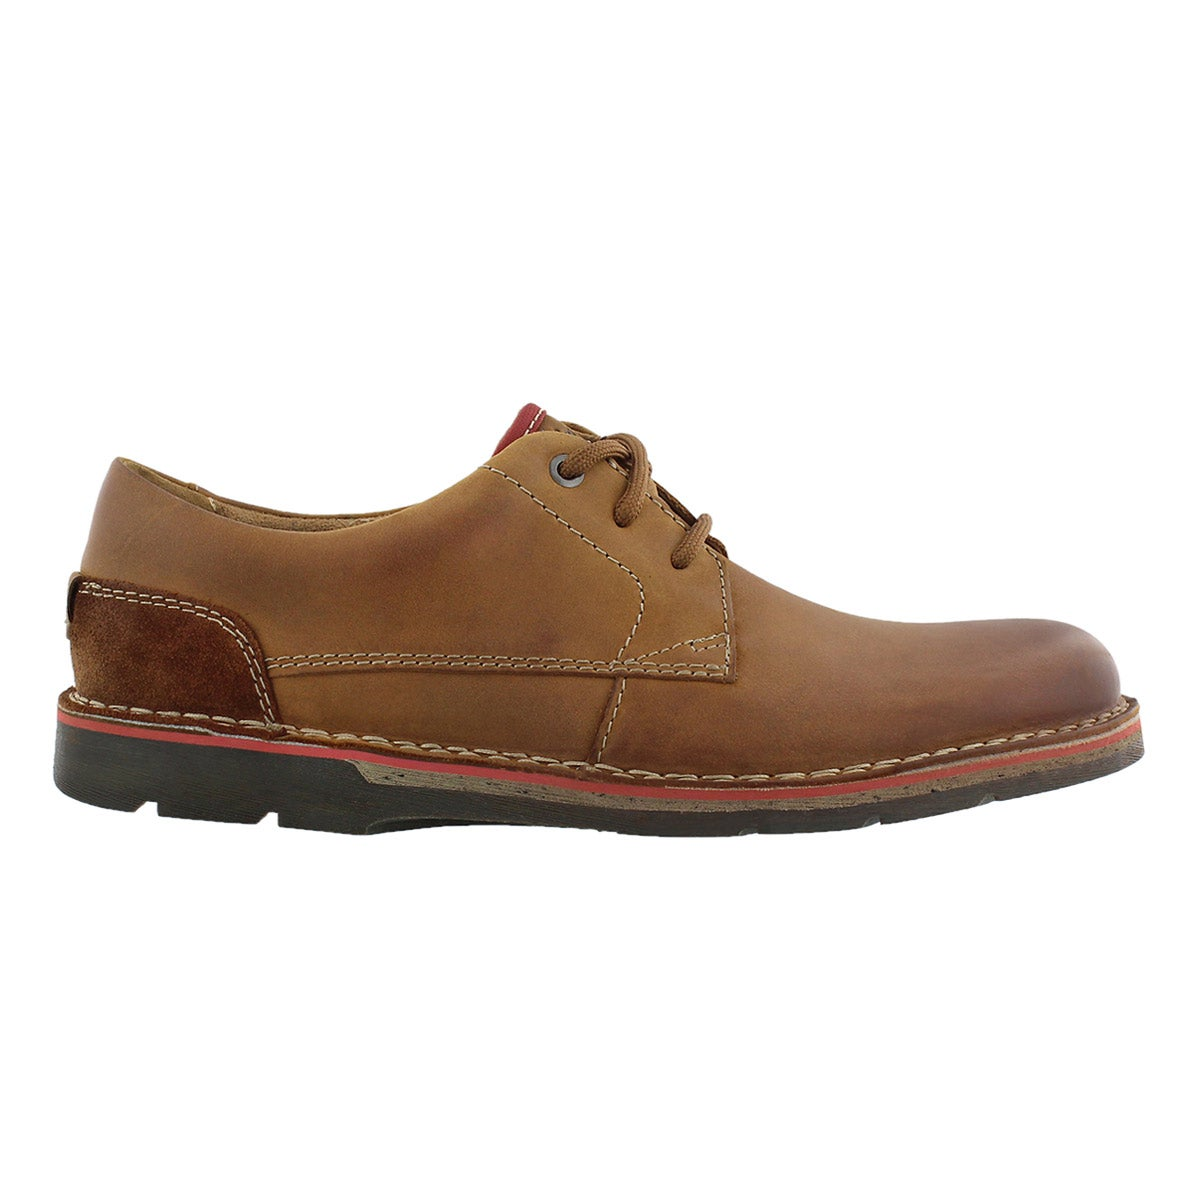 Mns Edgewick Plain tan casual oxford